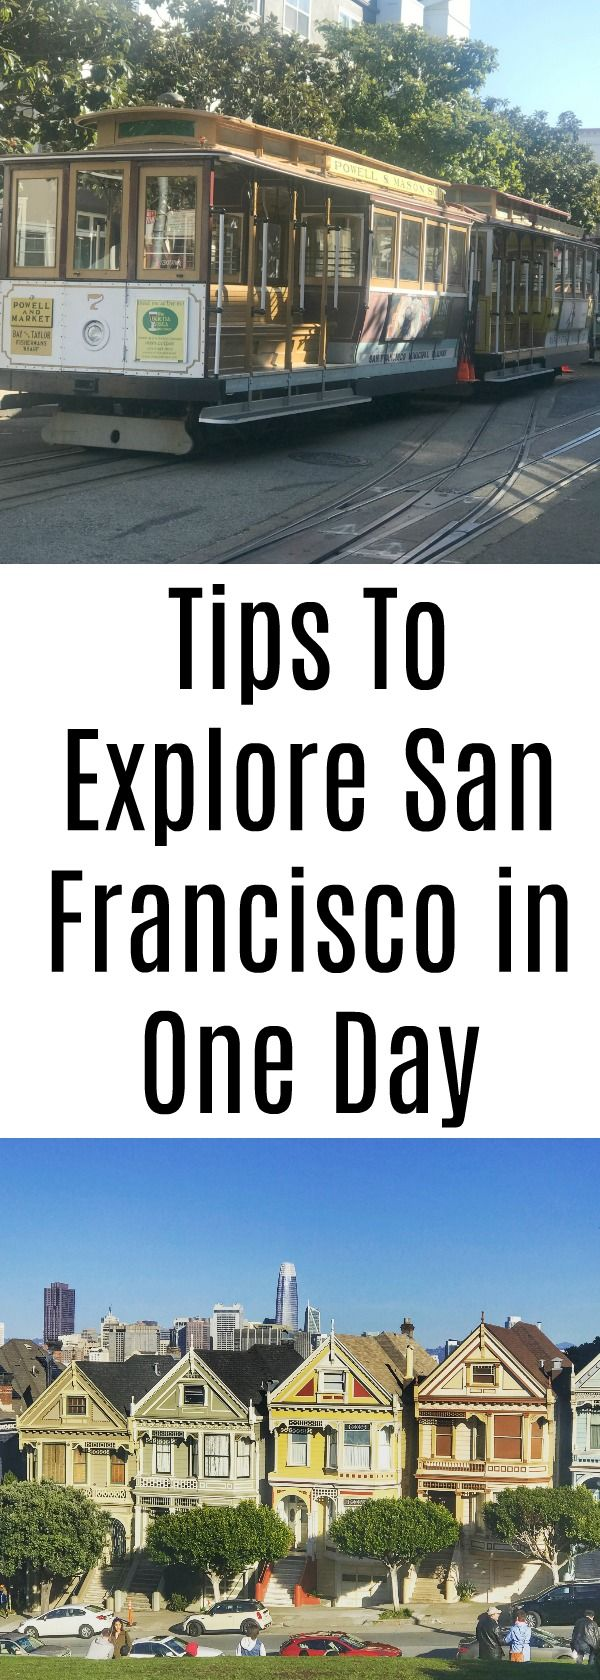 Tips to explore san Francisco in one day. traveling to San Francisco, the bay area, day trip to SFO, SFO, day trip to San Francisco, what to see in San Francisco, California day trips